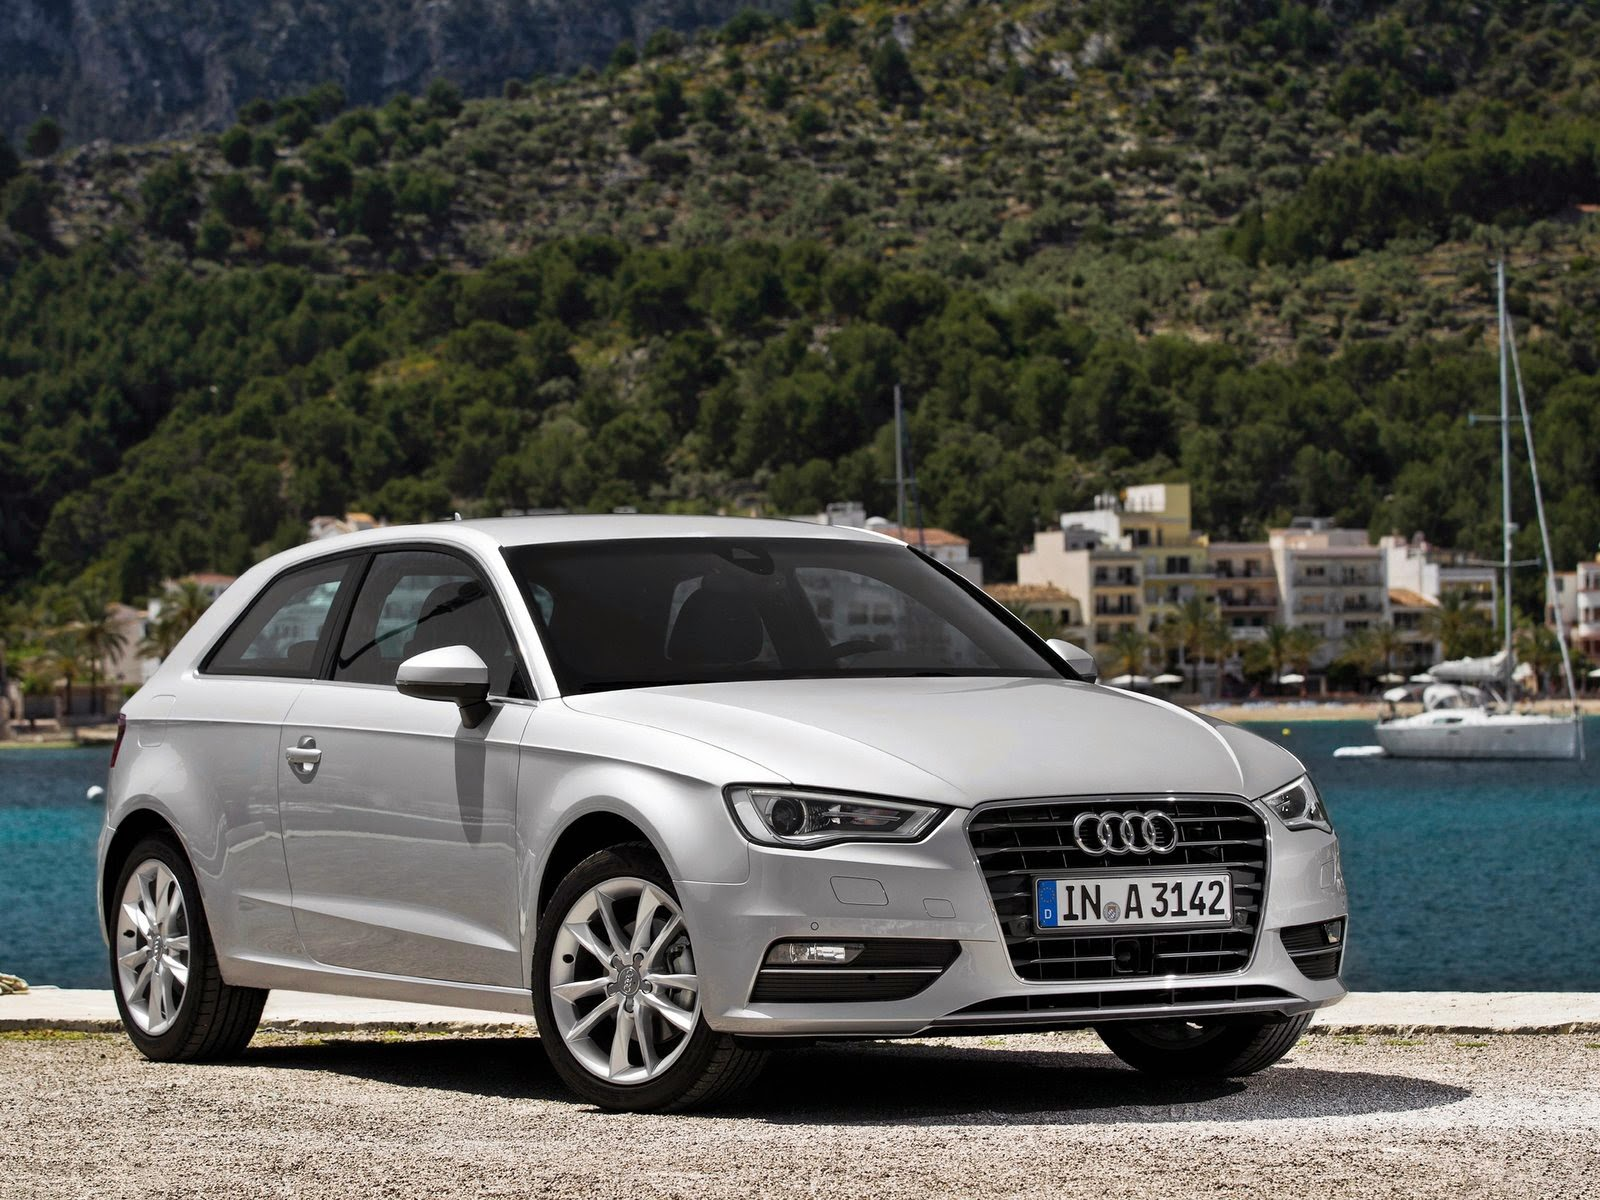 2013 audi a3 front view